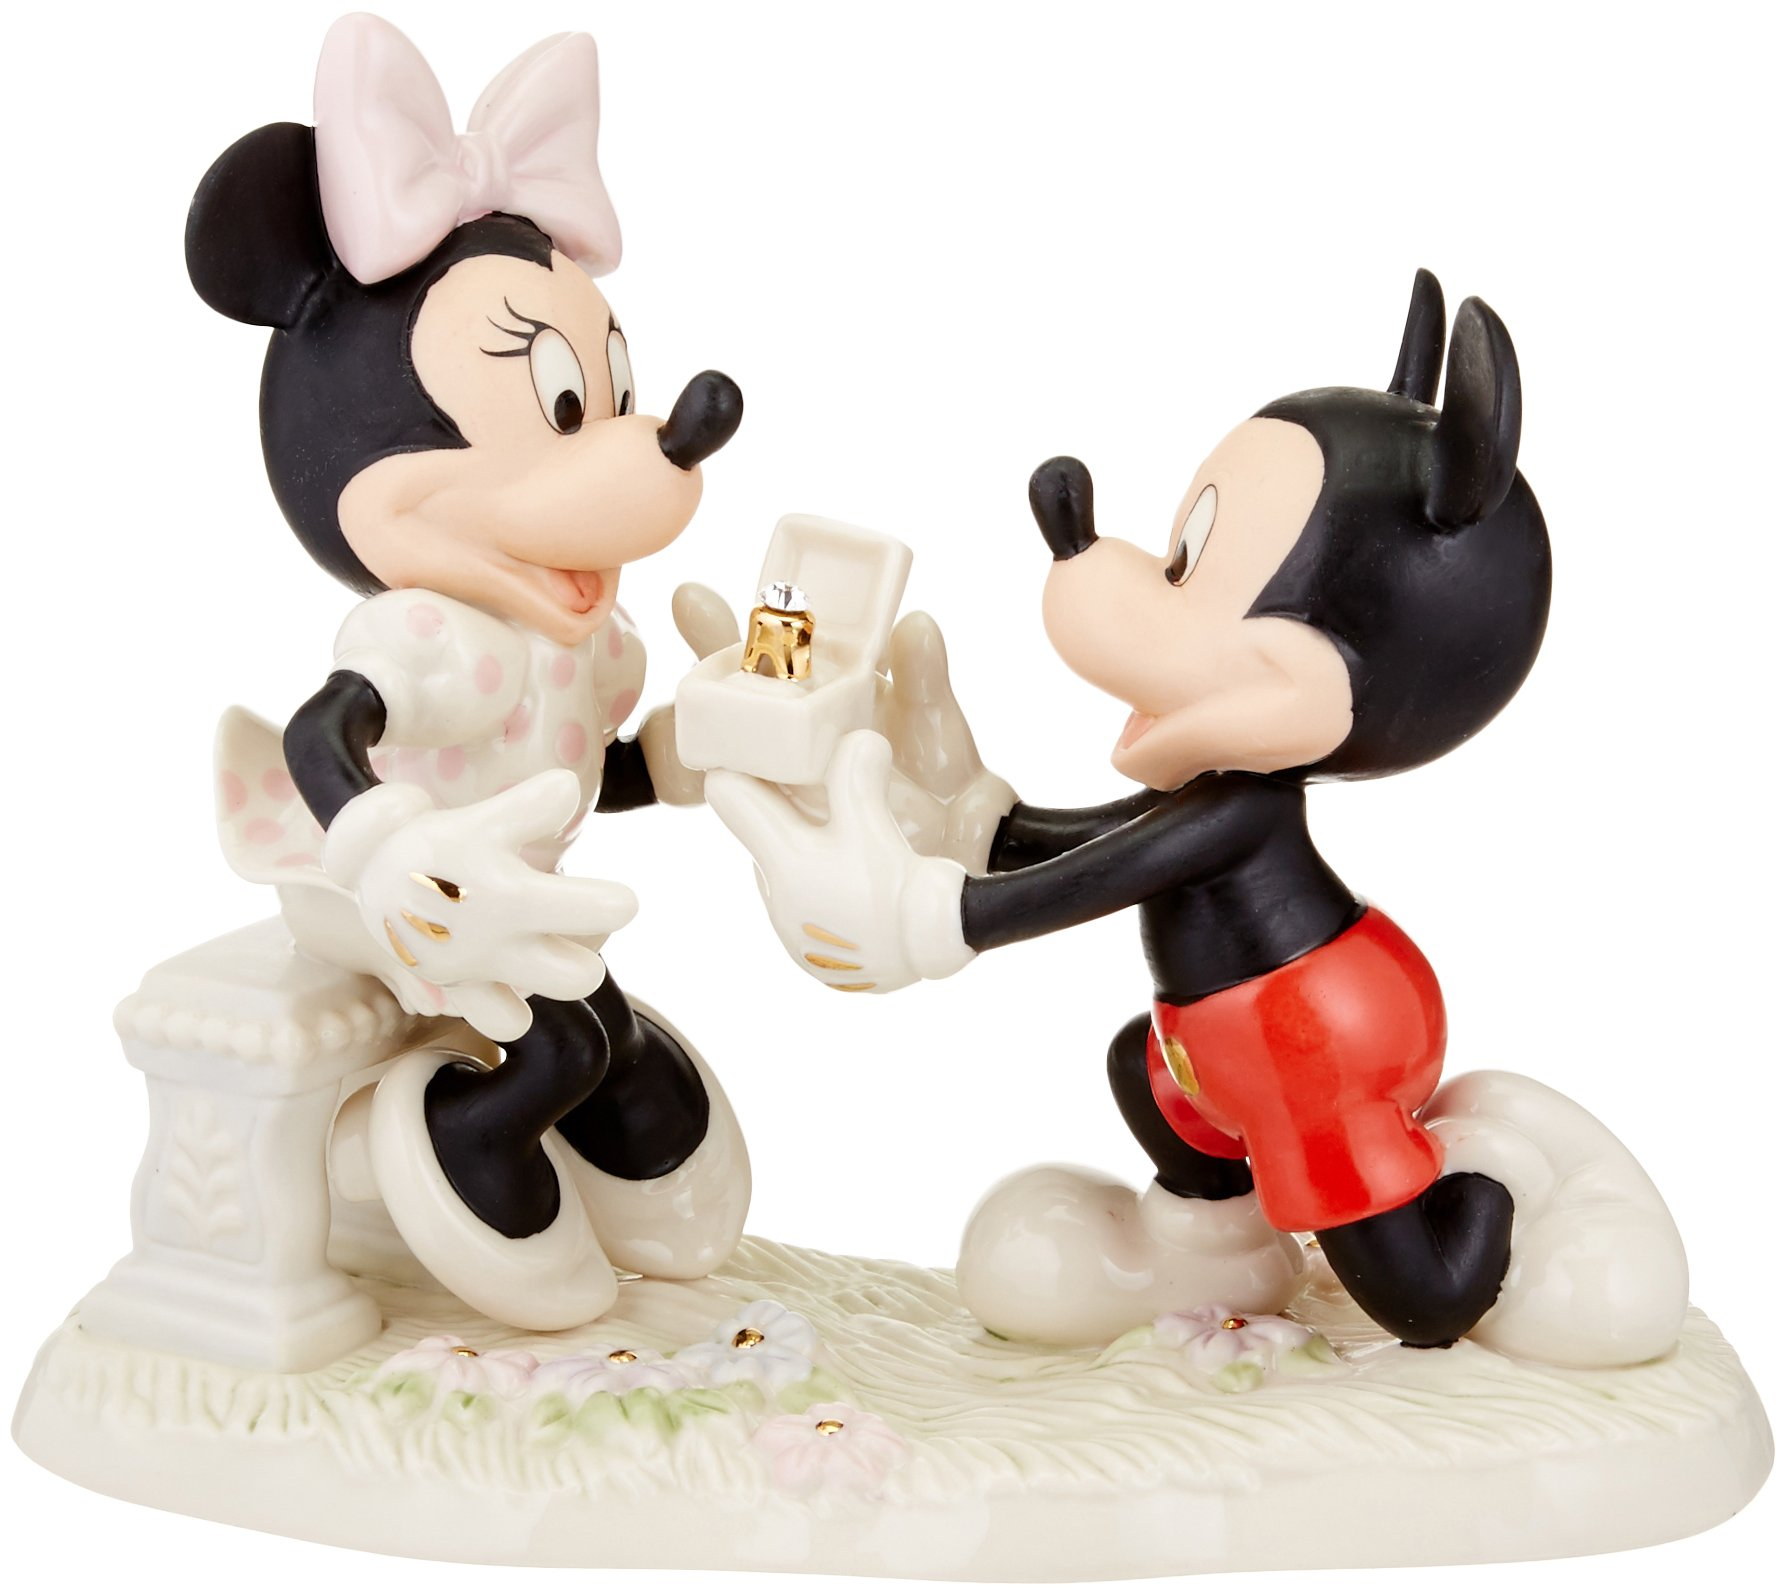 Lenox Minnie's Dream Proposal Figurine by Lenox